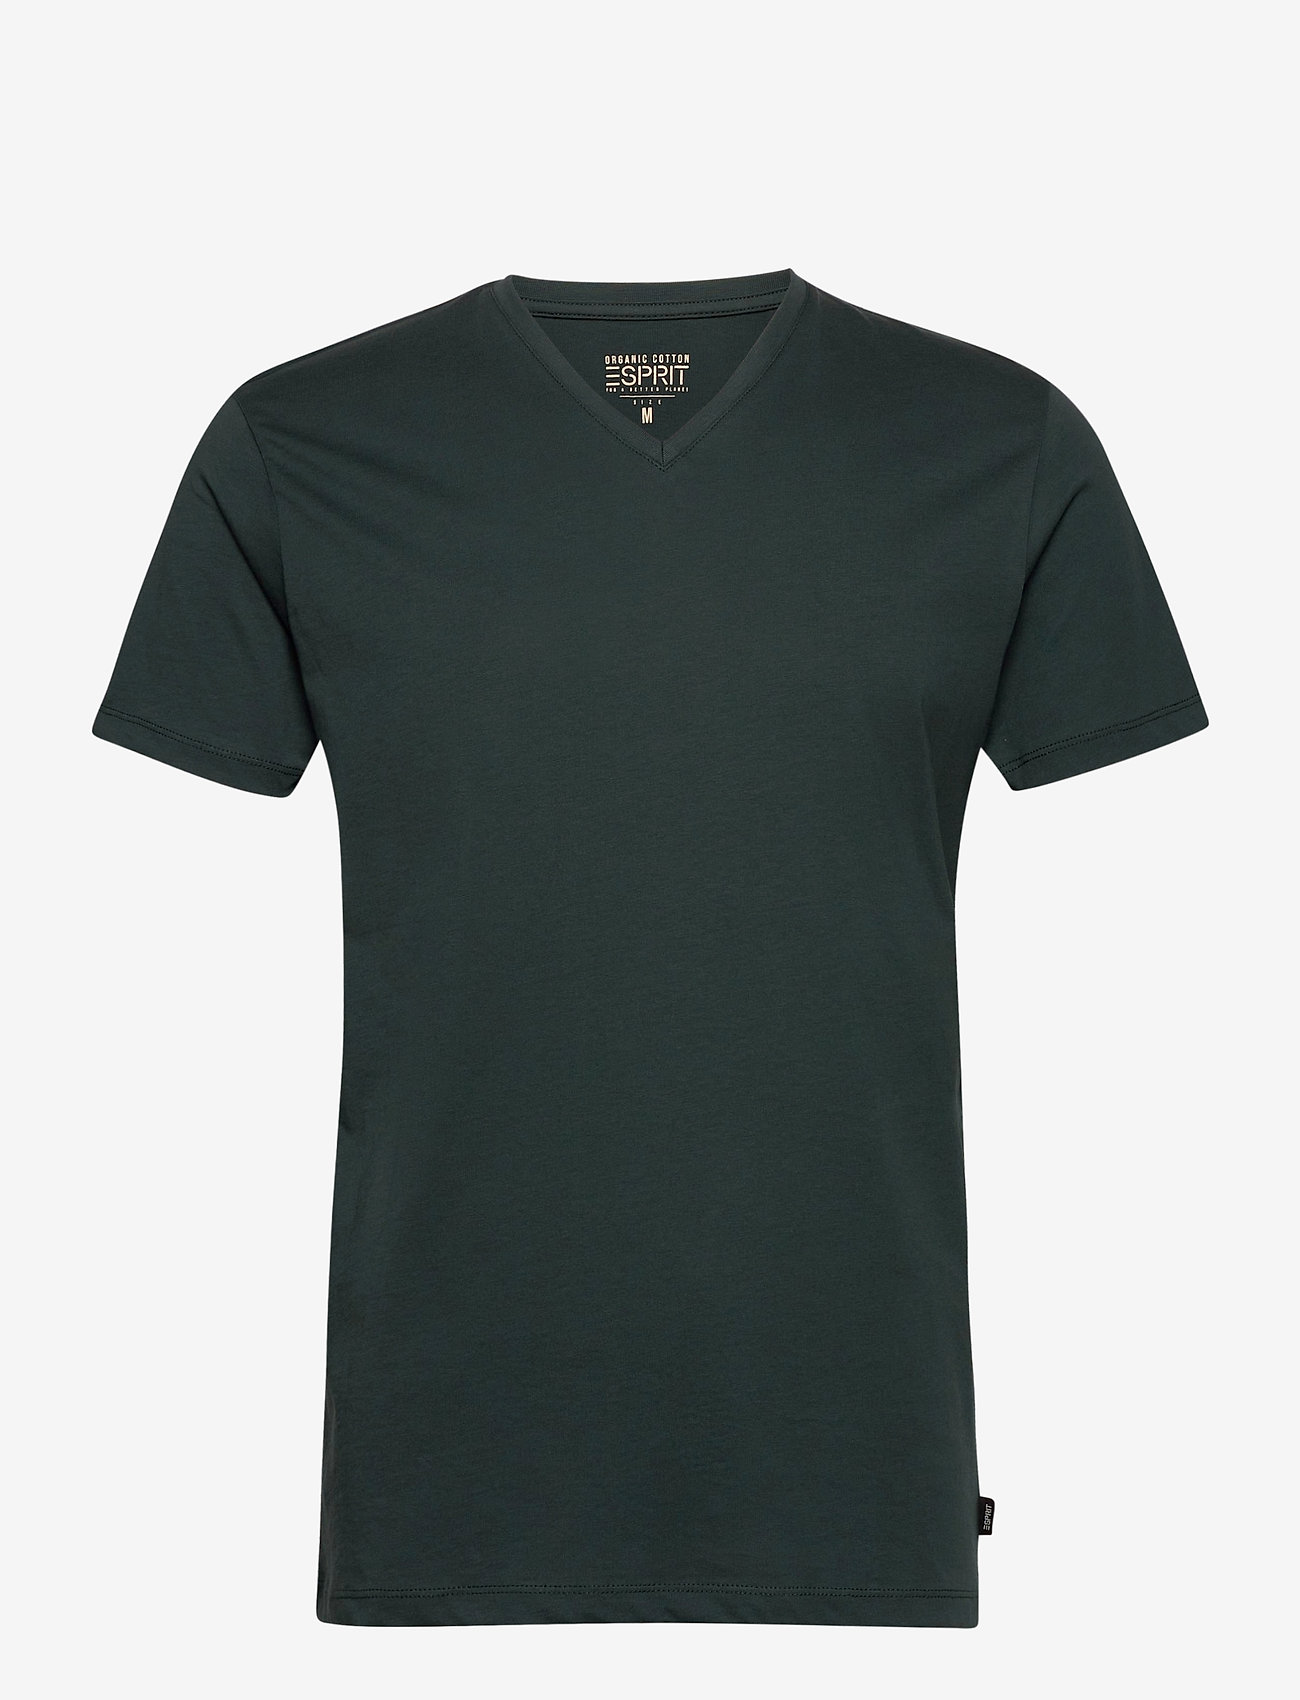 Esprit Casual - T-Shirts - basic t-shirts - teal blue - 0